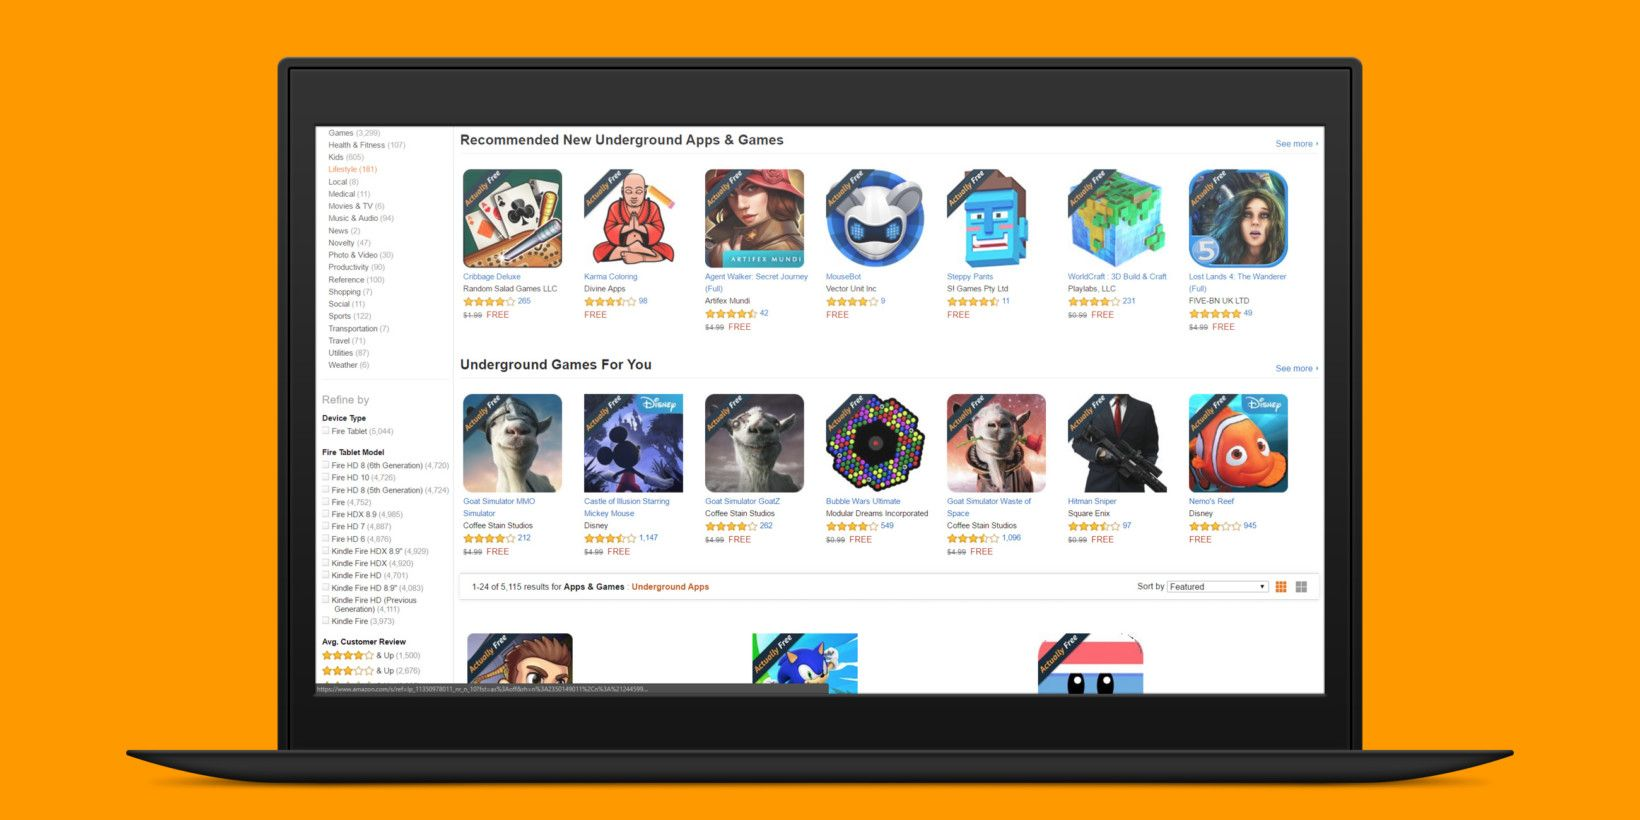 Amazon is ending its program that offered paid Android apps for free